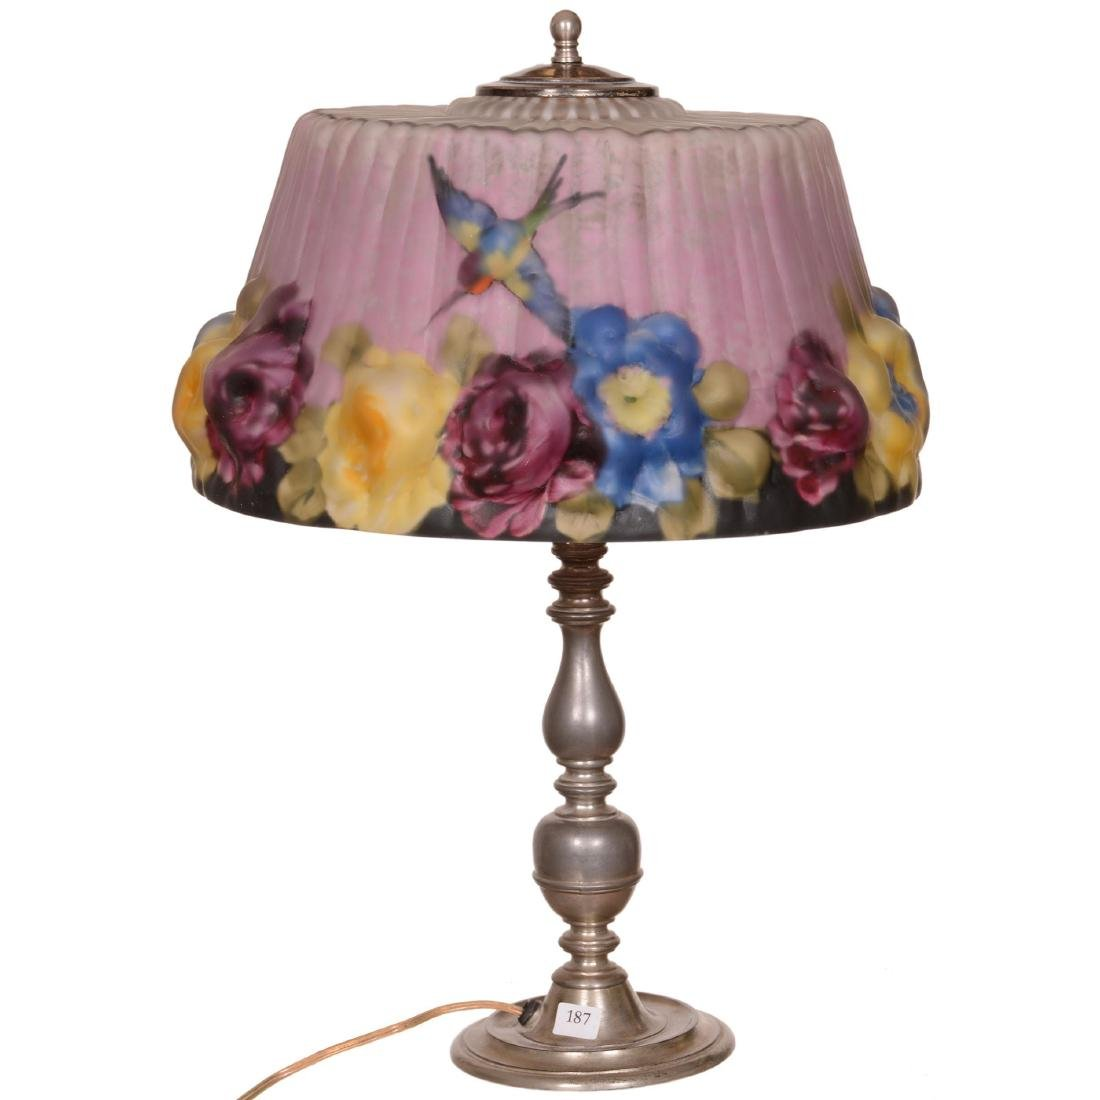 Original Pairpoint Puffy Table Lamp